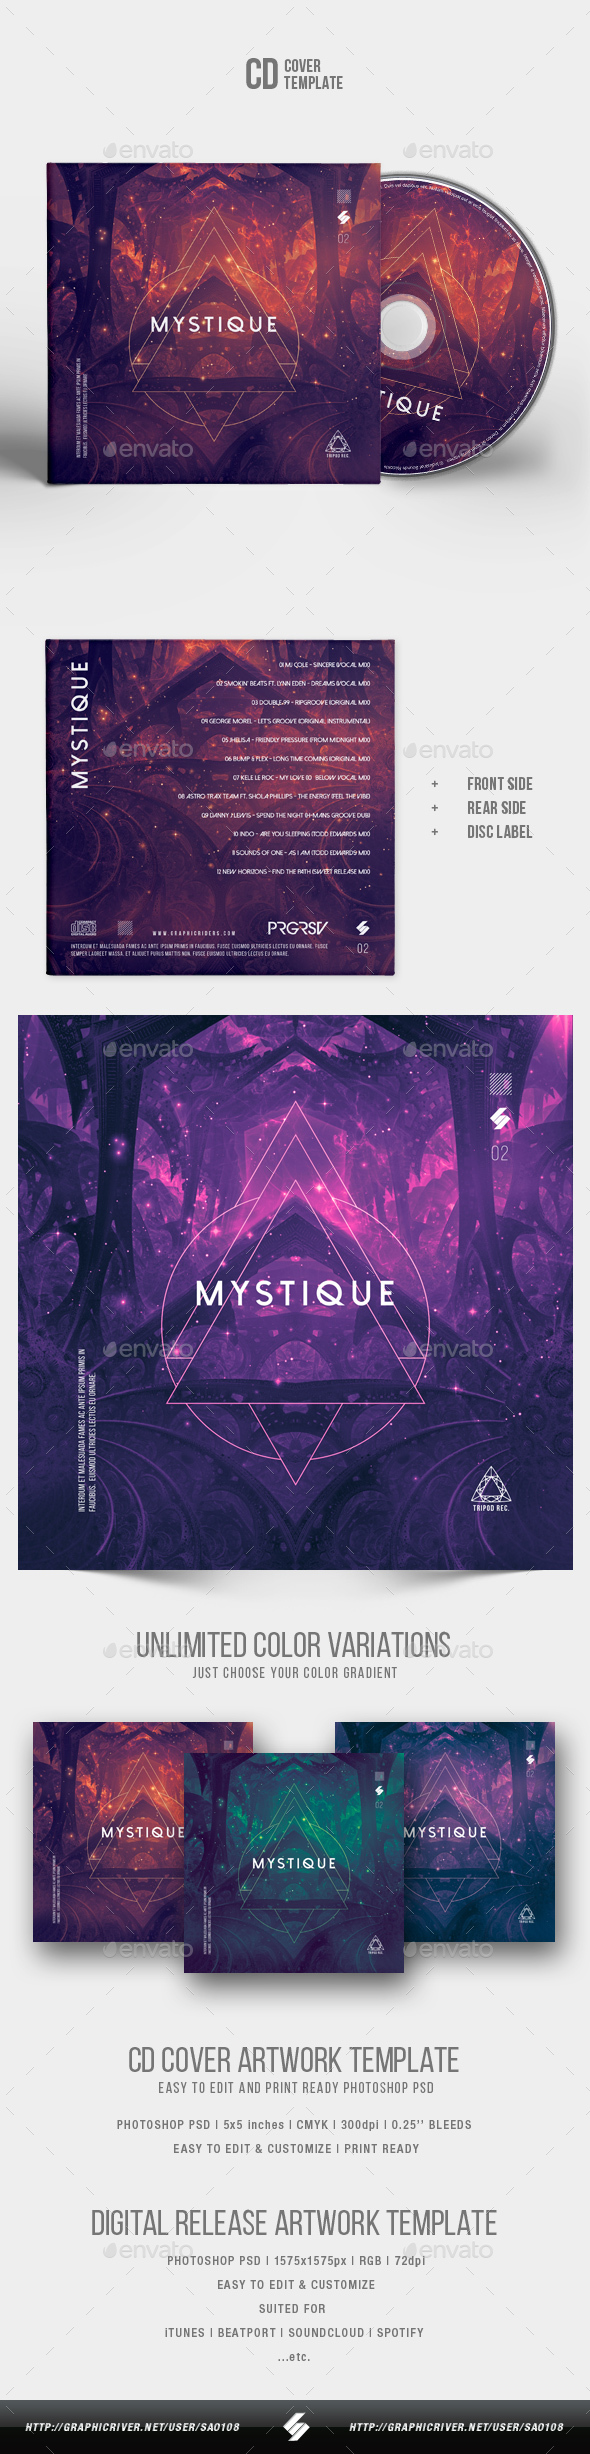 Beatport Graphics, Designs & Templates from GraphicRiver